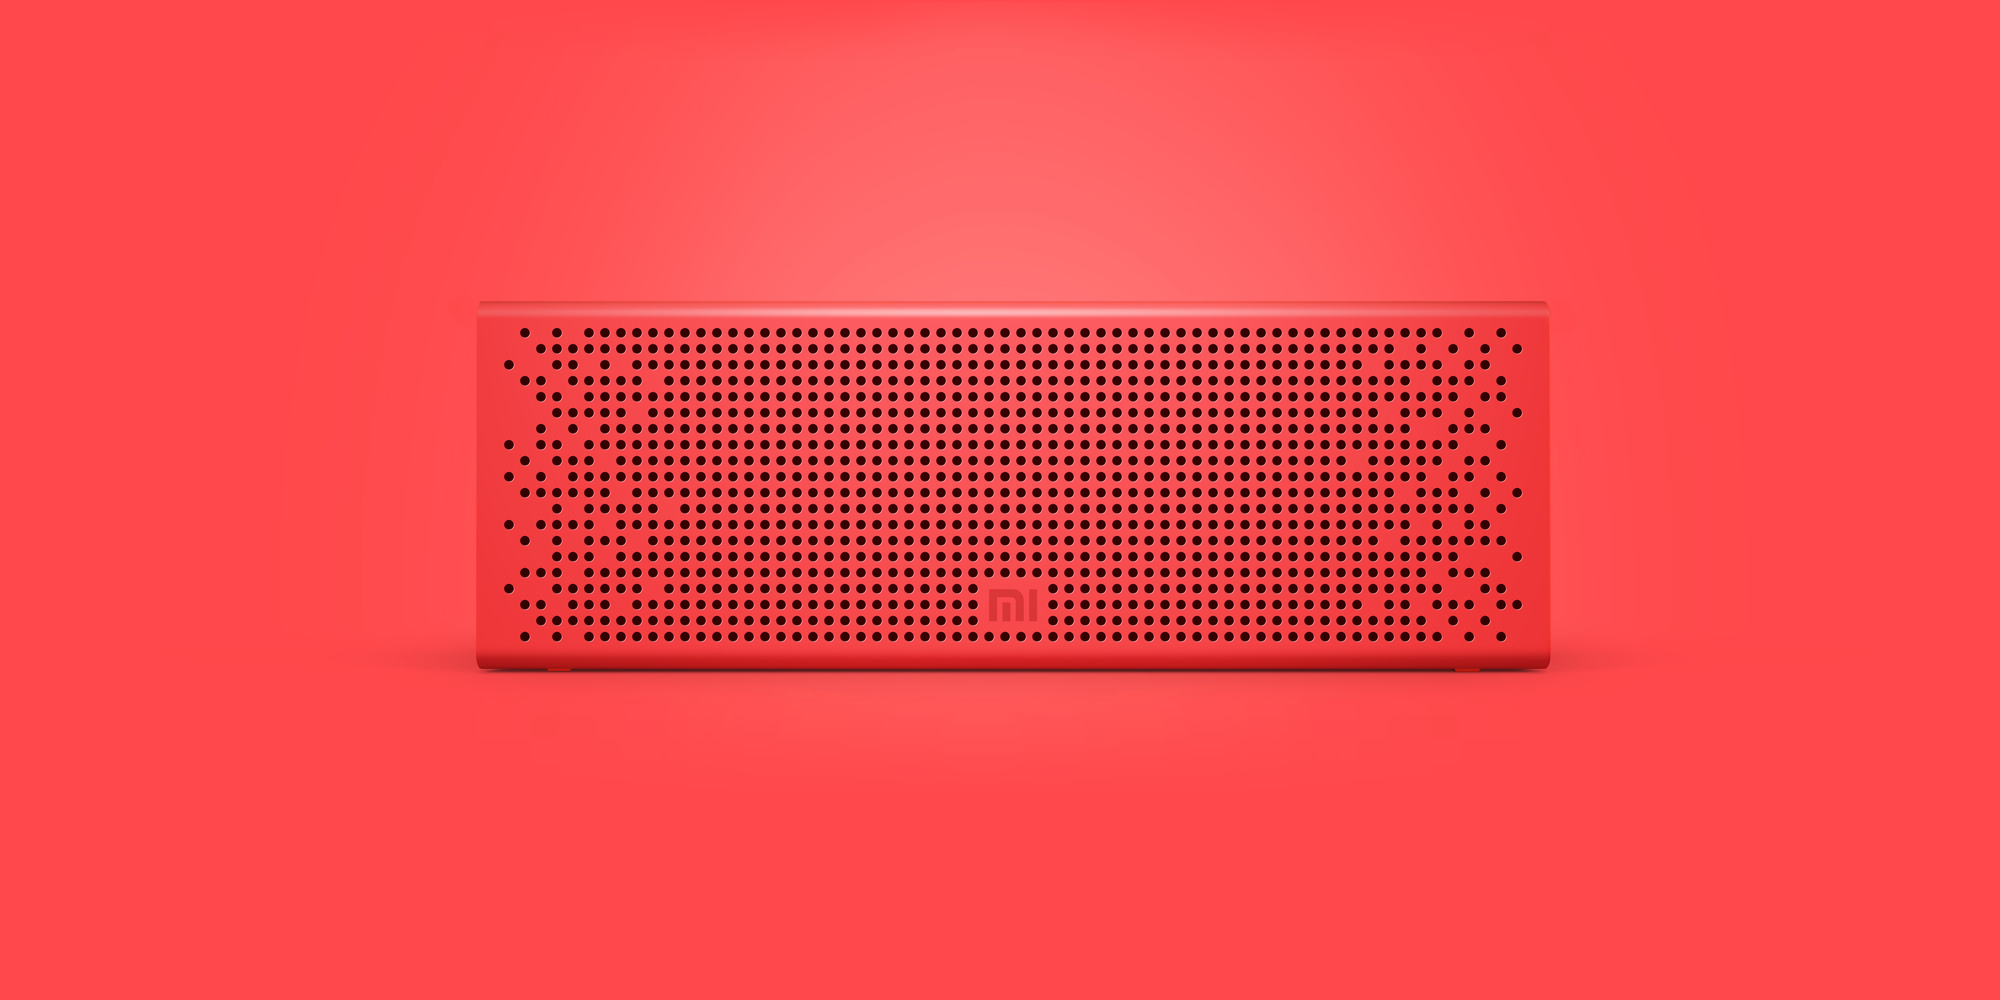 section-1-02-red.png